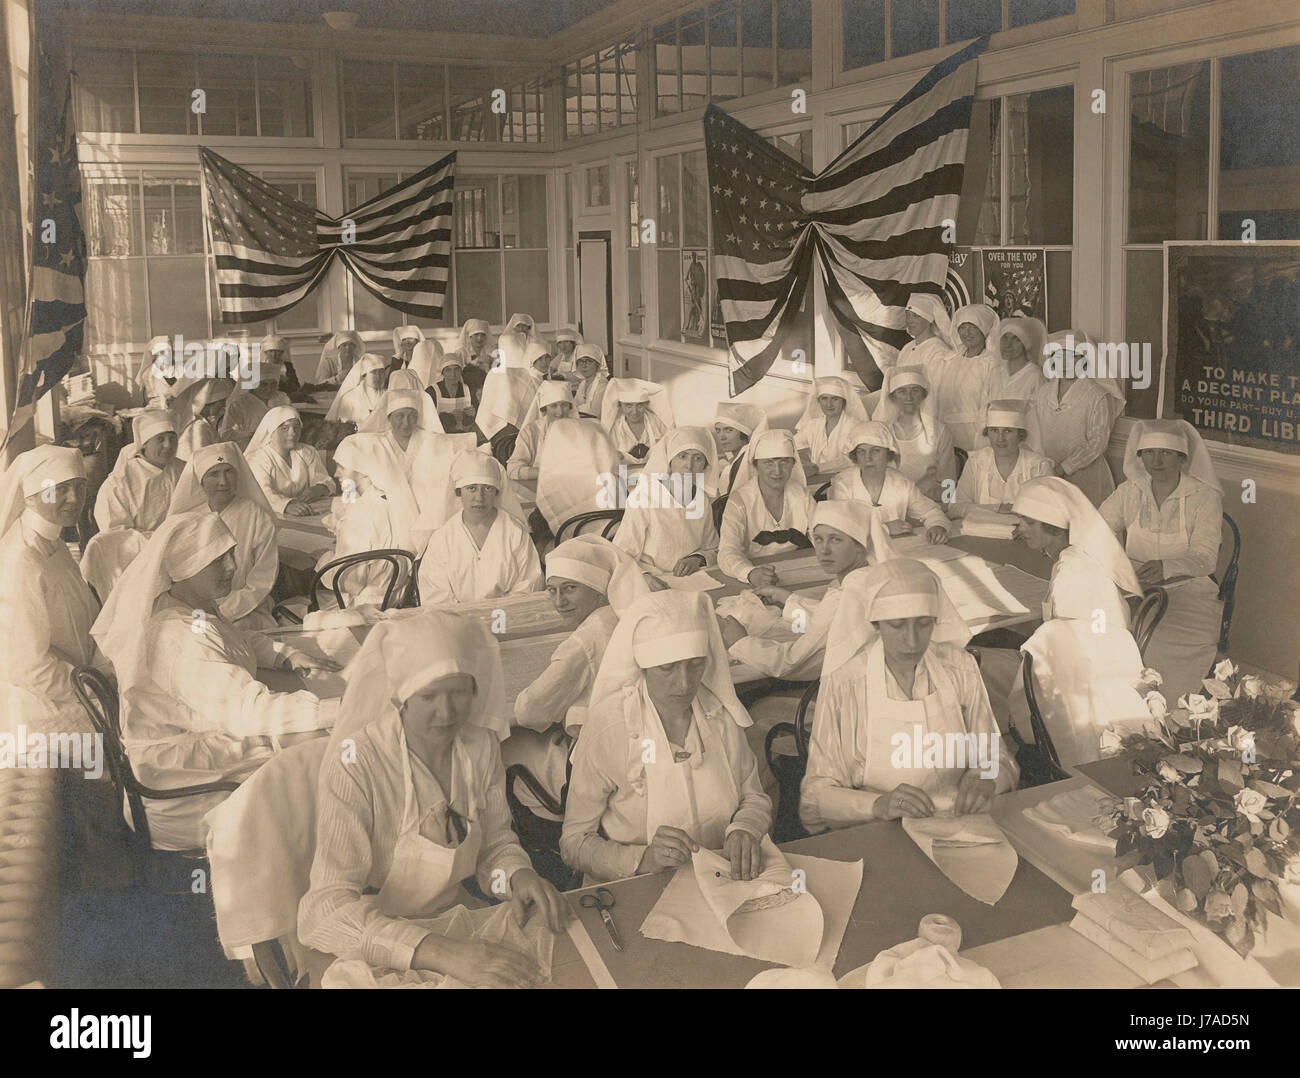 Office workers volunteering to pack bandages for the American Red Cross, 1919. - Stock Image